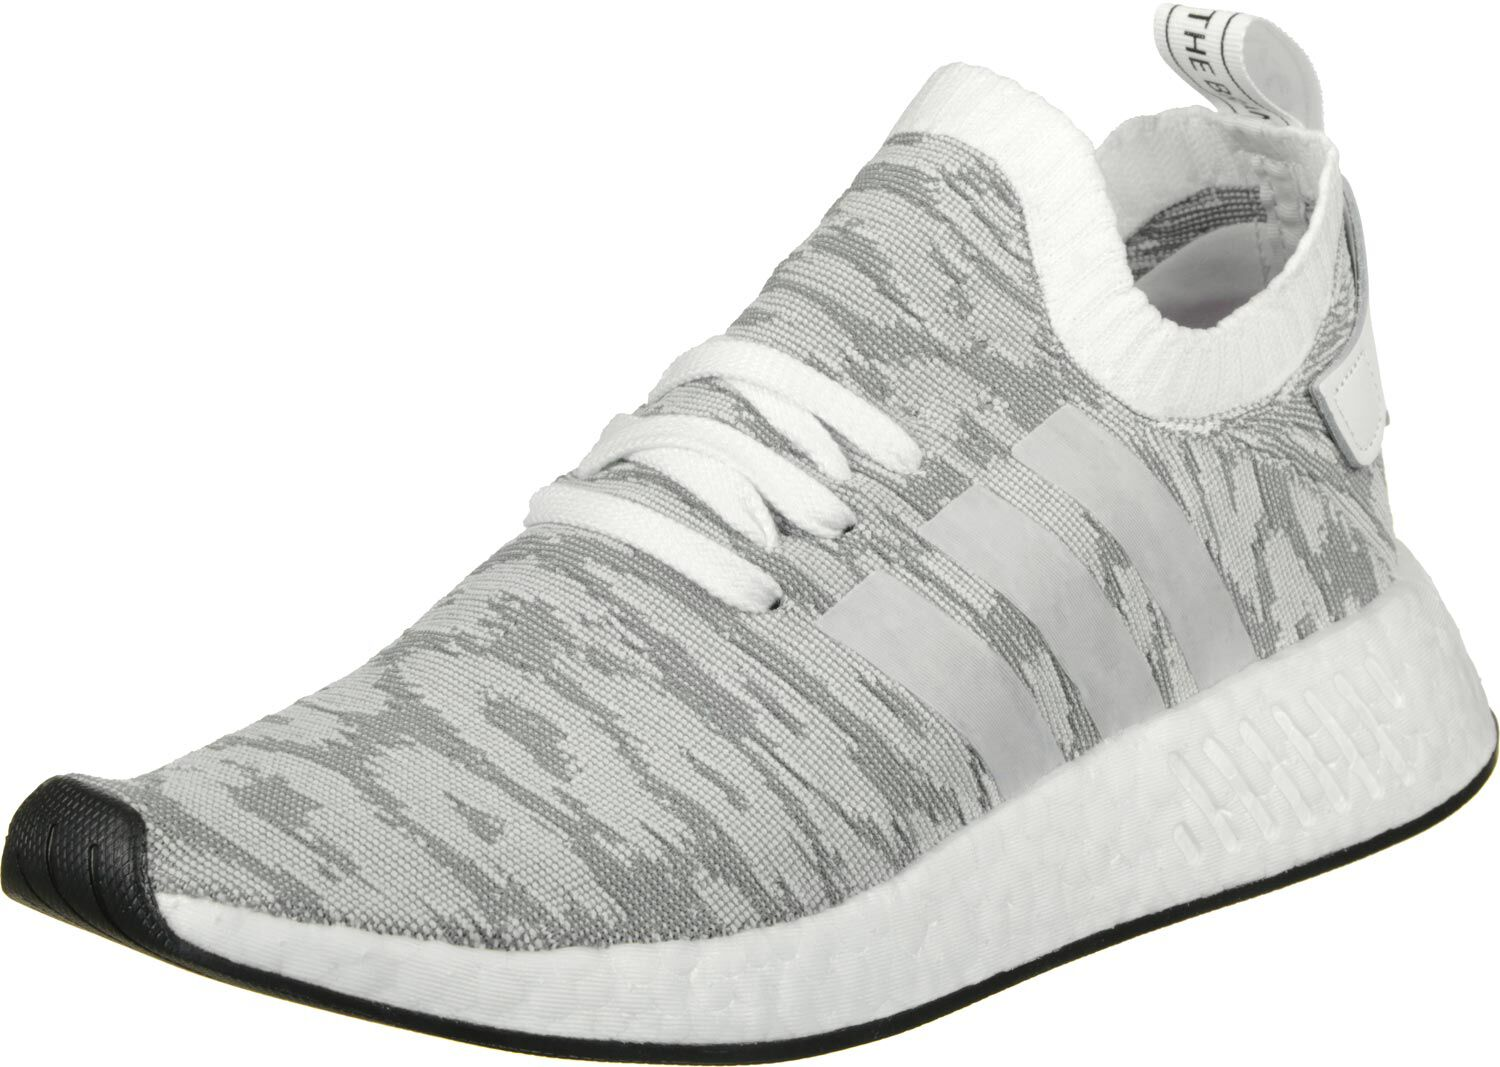 adidas NMD R2 PK - Sneakers Low at